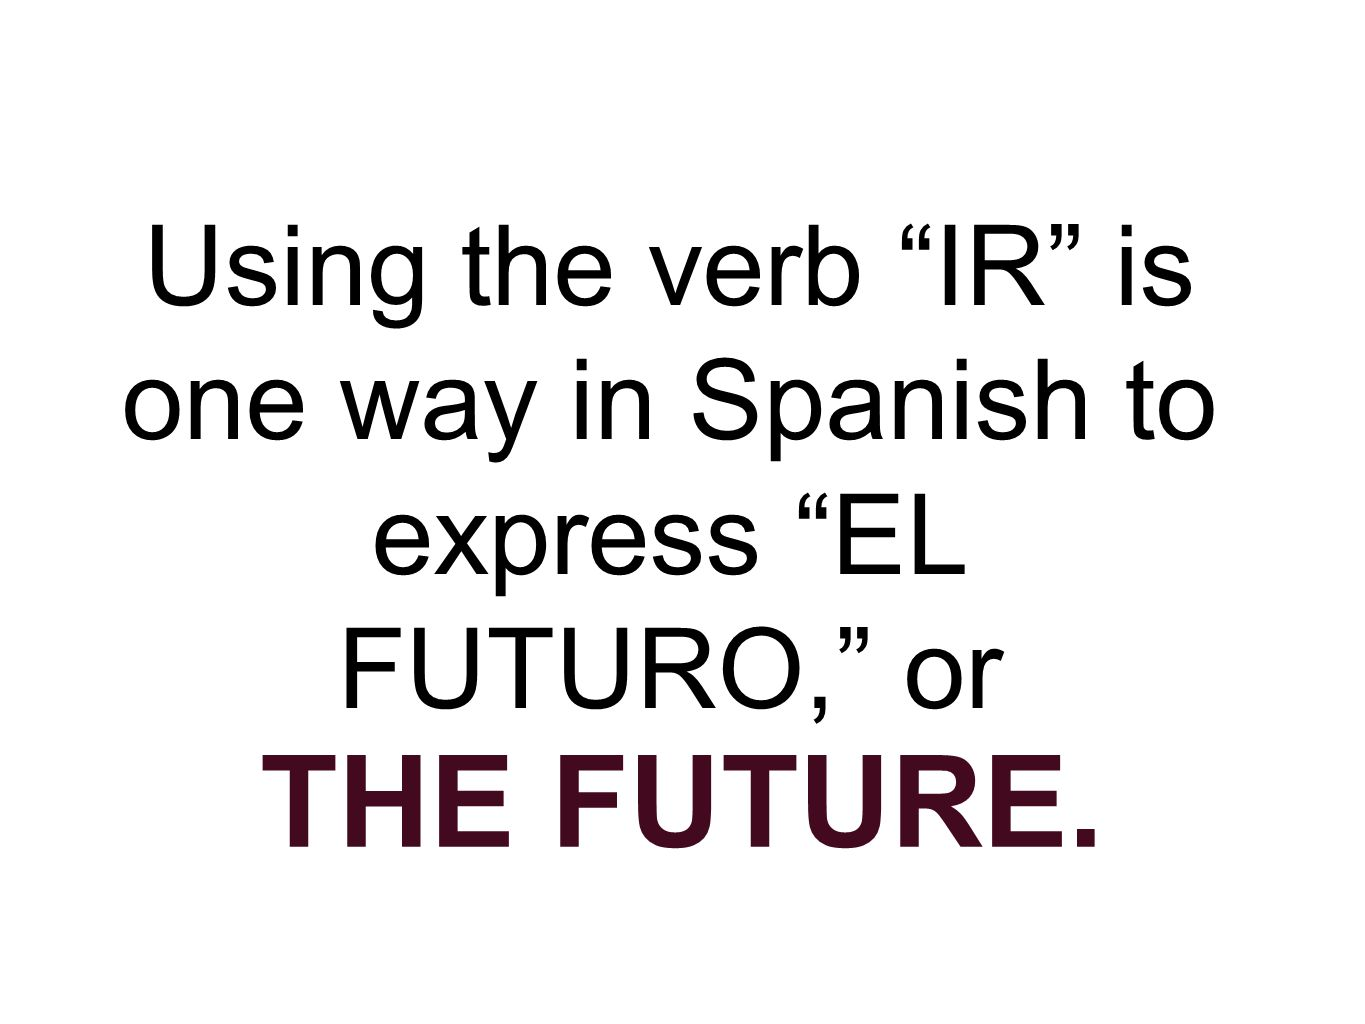 Using the verb IR is one way in Spanish to express EL FUTURO, or THE FUTURE.